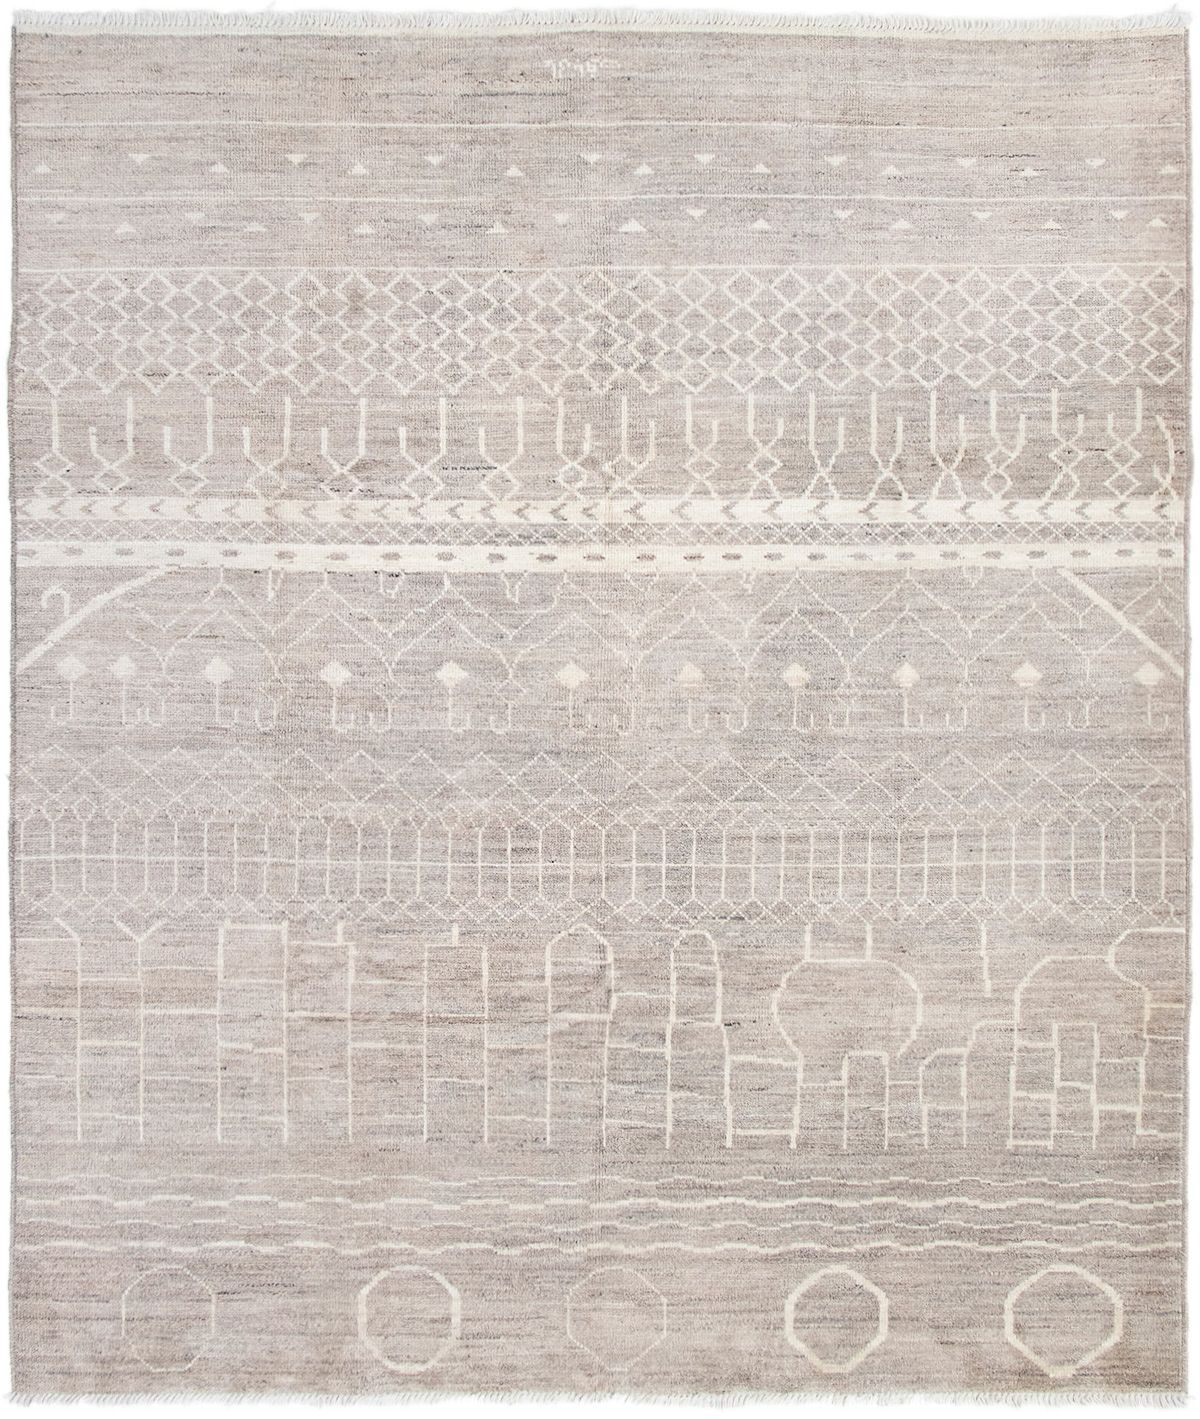 """Hand-knotted Tangier Grey Wool Rug 8'5"""" x 9'10"""" Size: 8'5"""" x 9'10"""""""